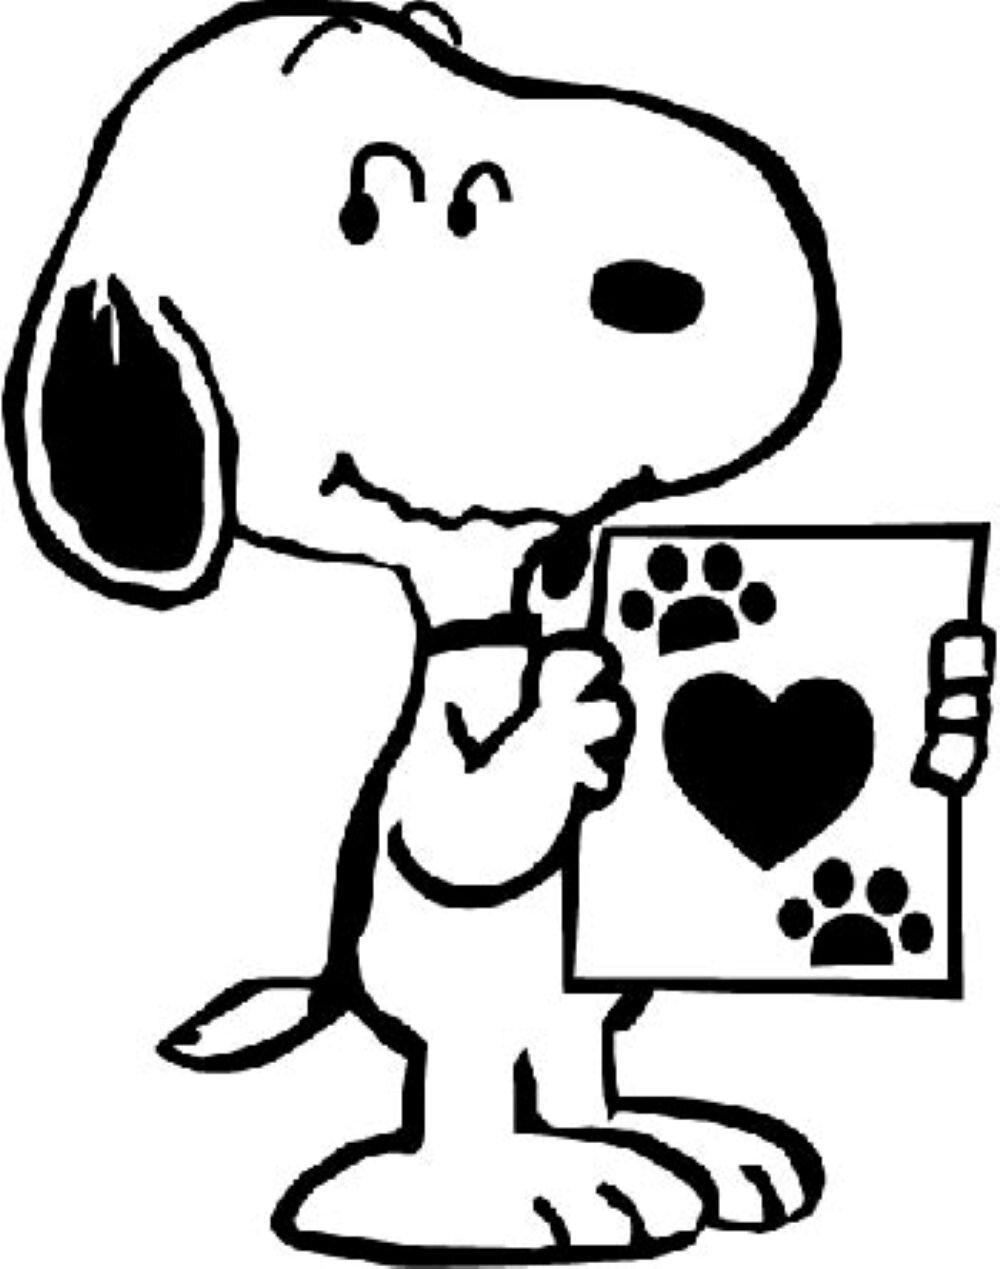 Design With Vinyl Snoopy Dog Paw Print Peanuts Cartoon Character Wall Sticker Art Design Decal For Girls Boys Kids Room Home Decor Stickers Wall Art Vinyl 40x35 Inch Wayfair Ca